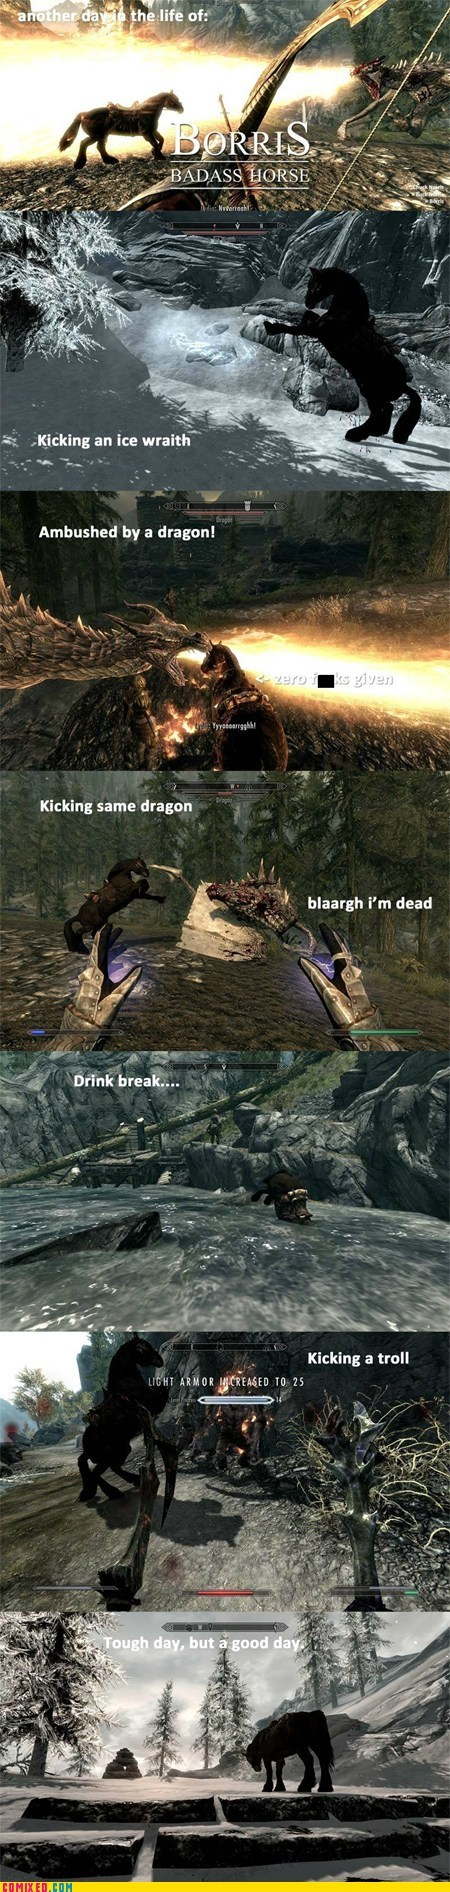 awesome,borris,followers,horses,Skyrim,video games